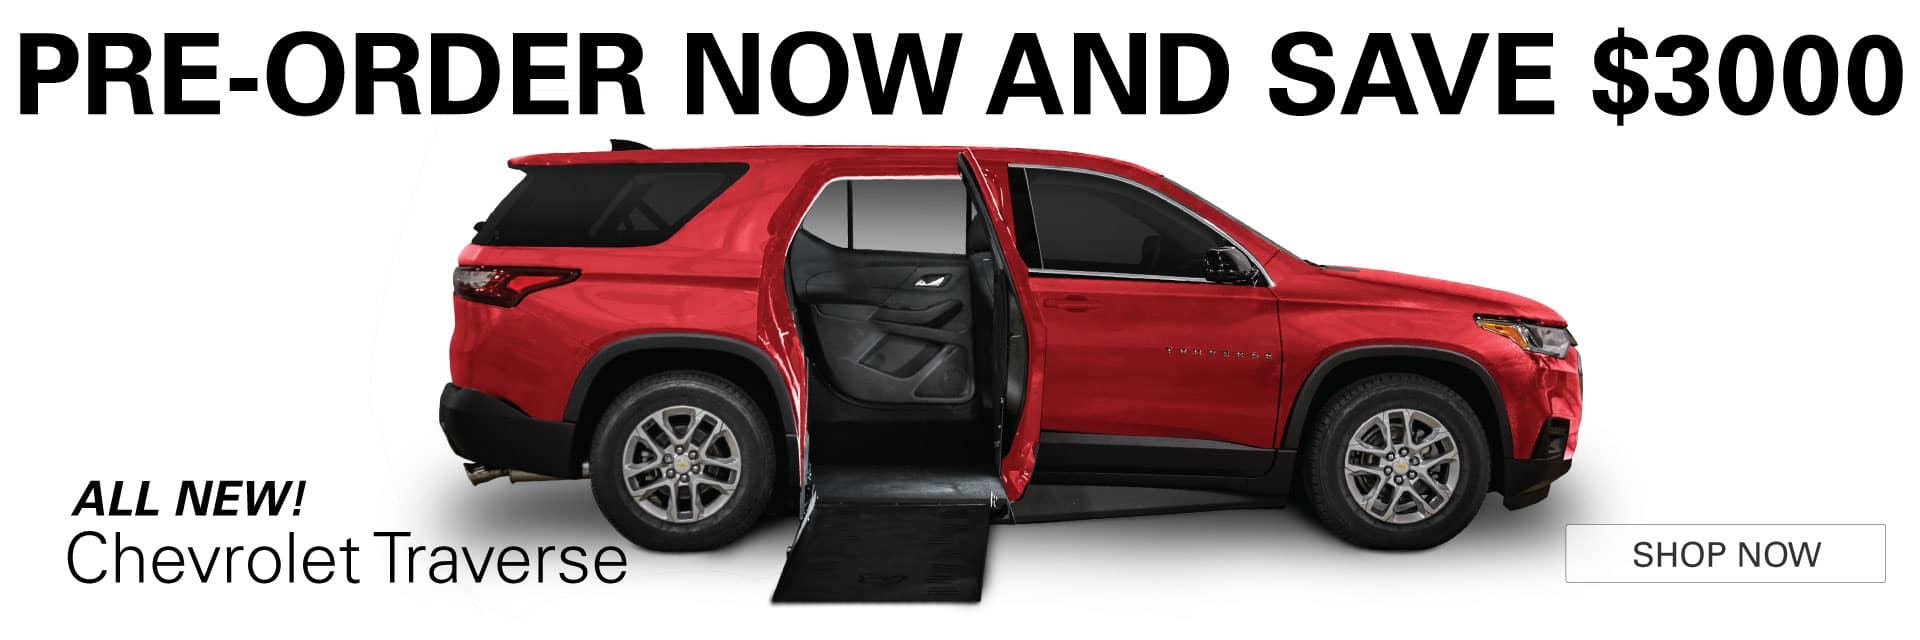 Pre-Order the New Accessible Chevrolet Traverse Now and Save $3000